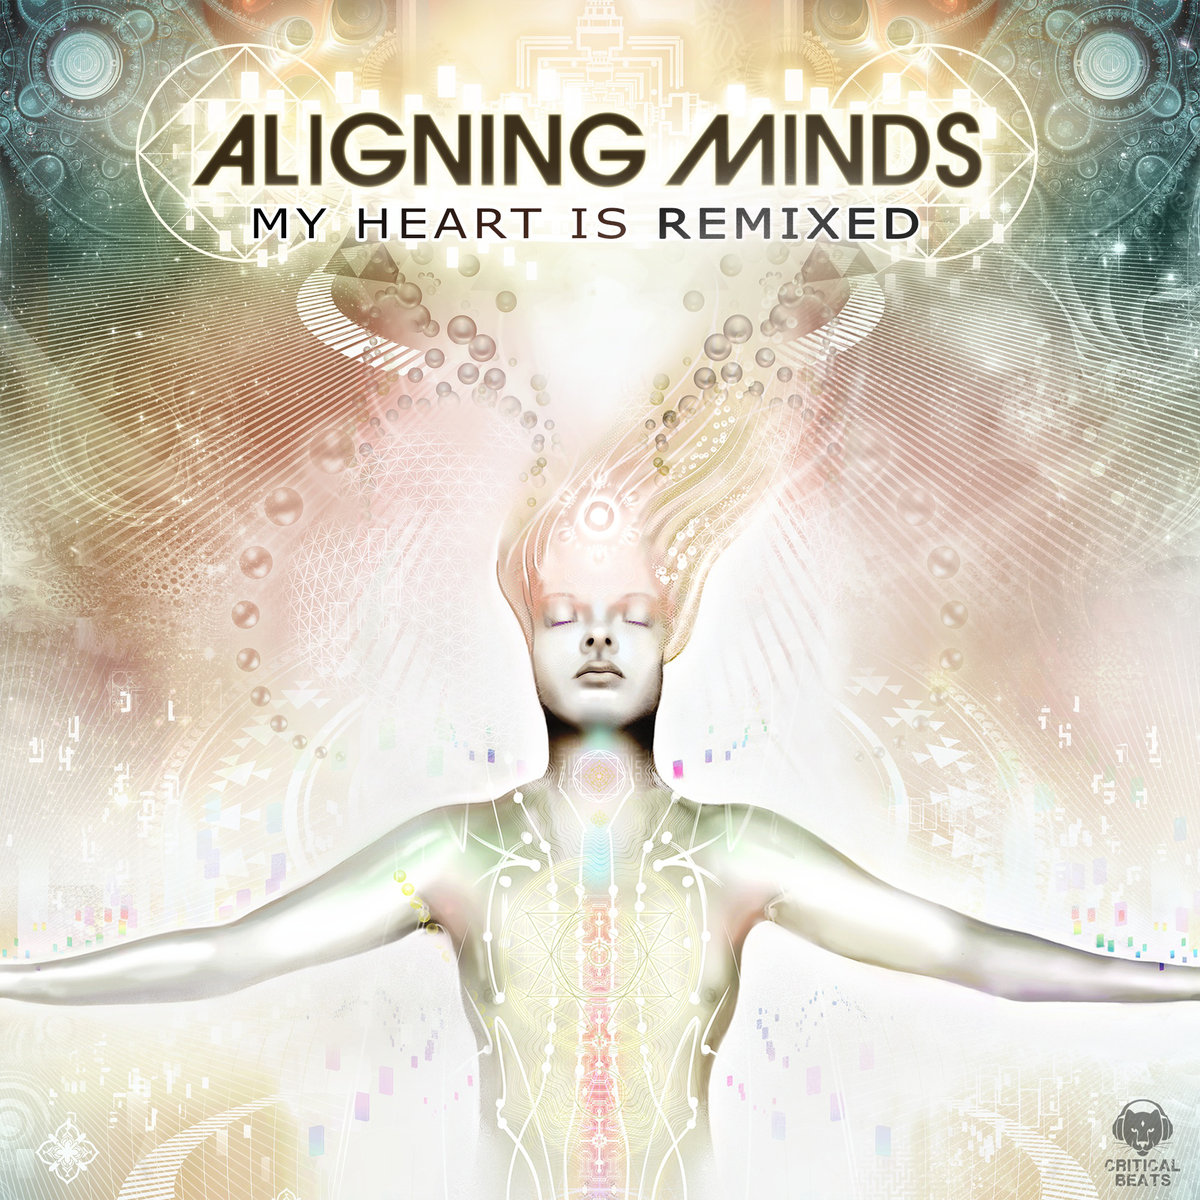 Aligning Minds - Weeping Willow (Vano Remix) @ 'My Heart Is Remixed' album (asheville, baltimore)